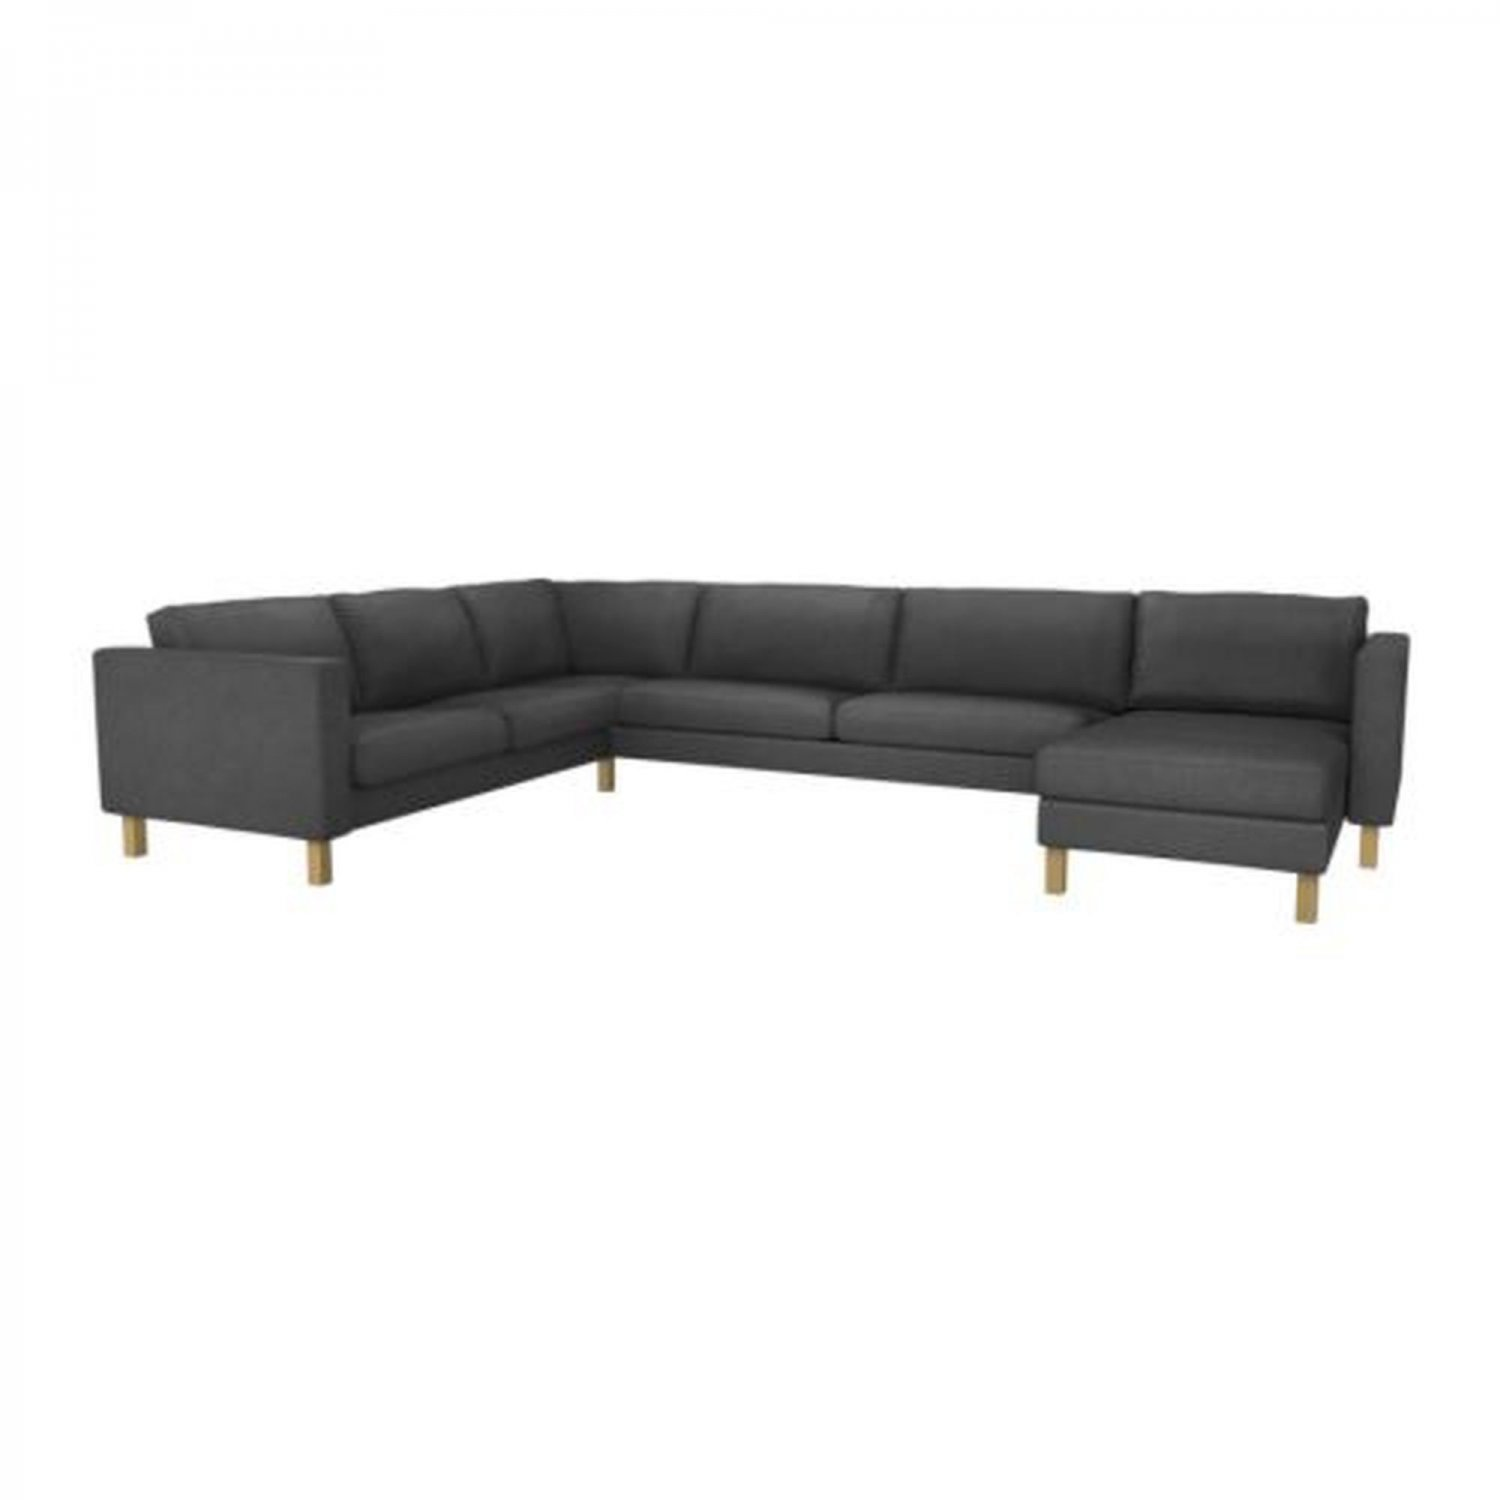 Ikea karlstad corner sofa with chaise slipcover cover for Chaise couch cover